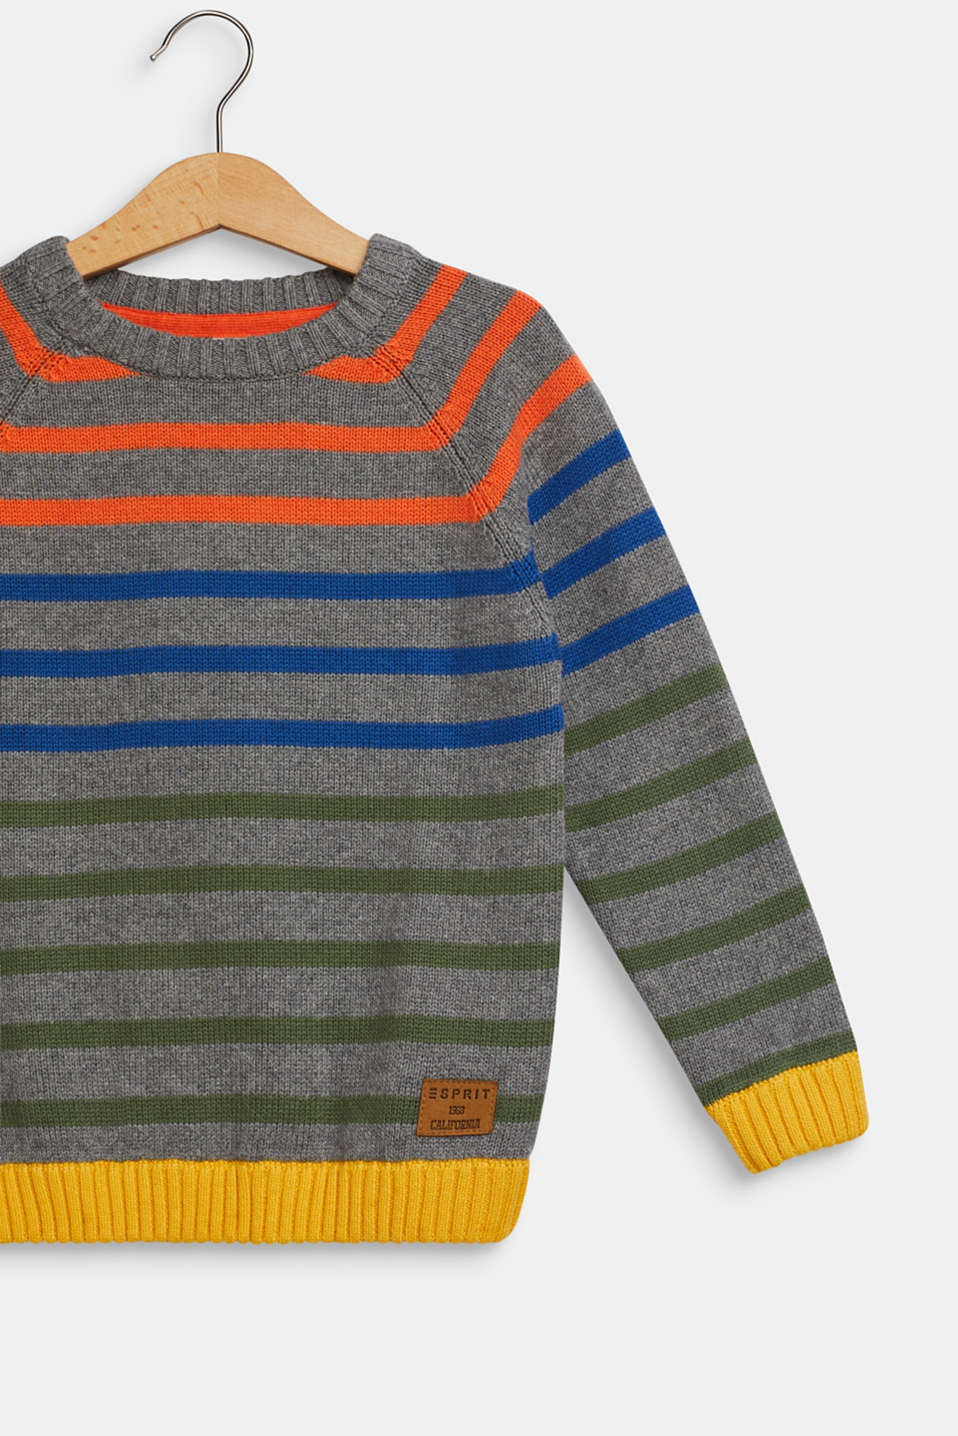 Striped jumper in 100% cotton, DARK HEATHER G, detail image number 2